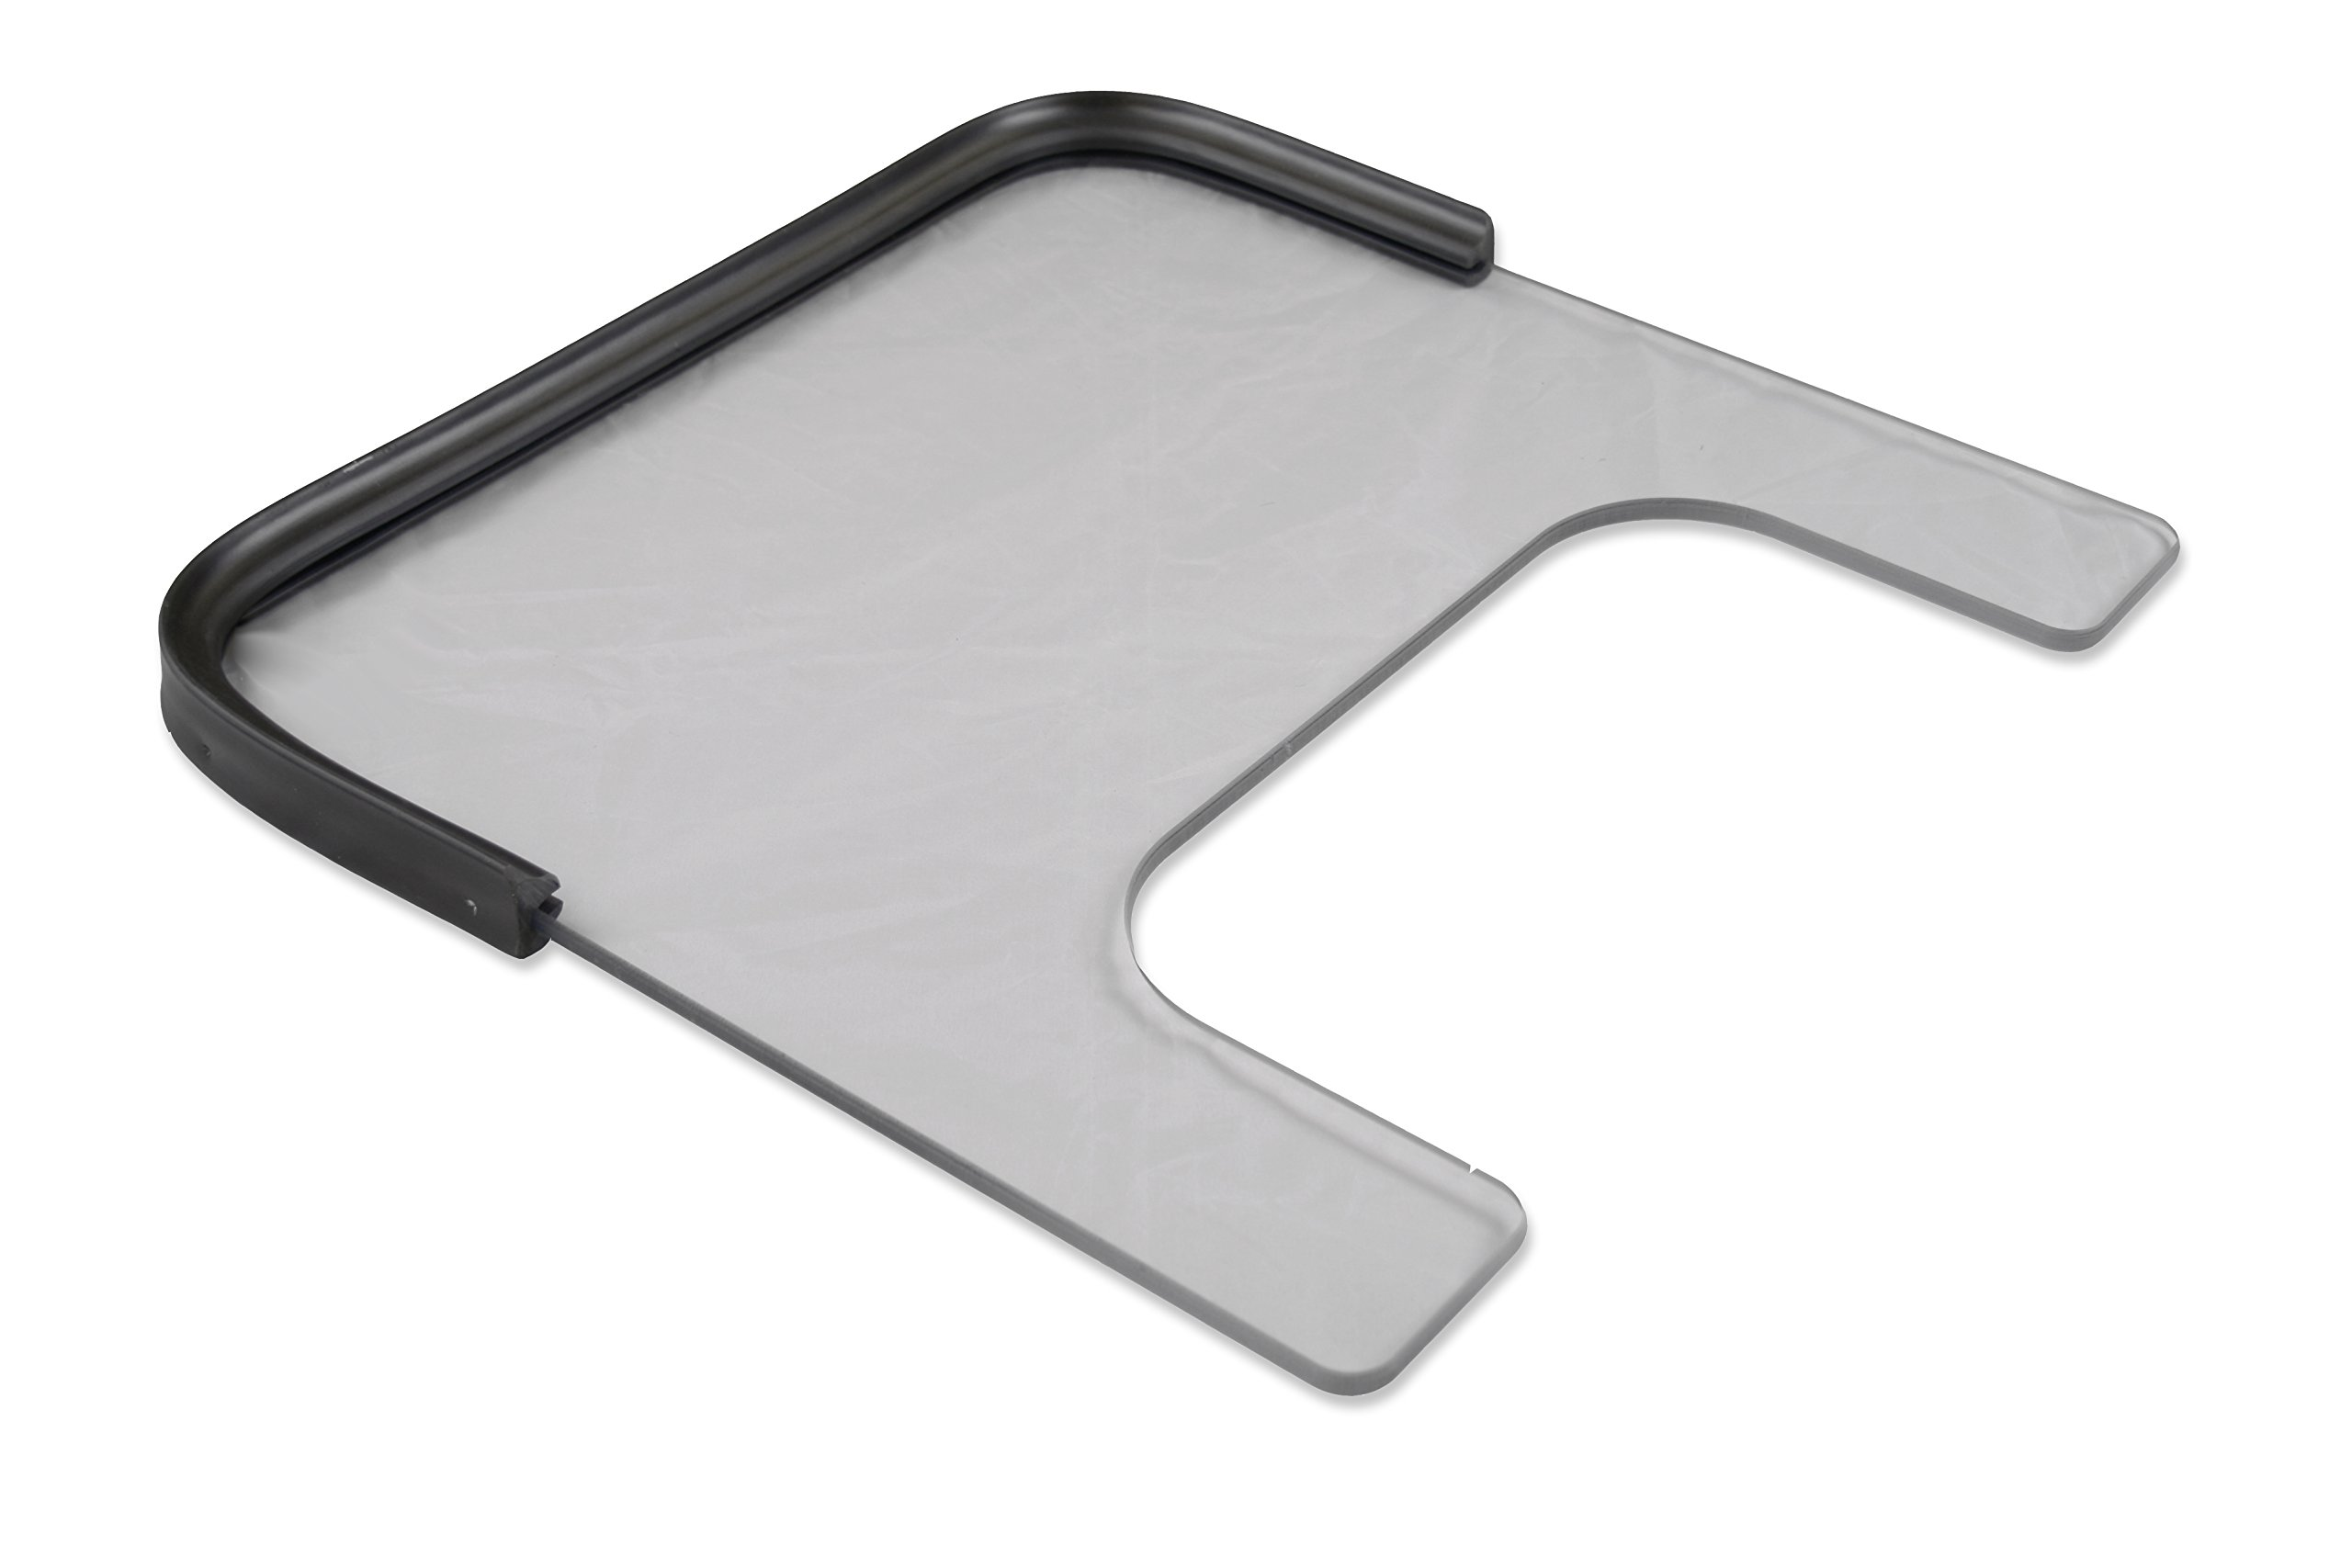 """Rehabilitation Advantage 3/8"""" Polycarbonate Wheelchair Tray (Adult) with Rubber Rim and Included Velcro Straps"""